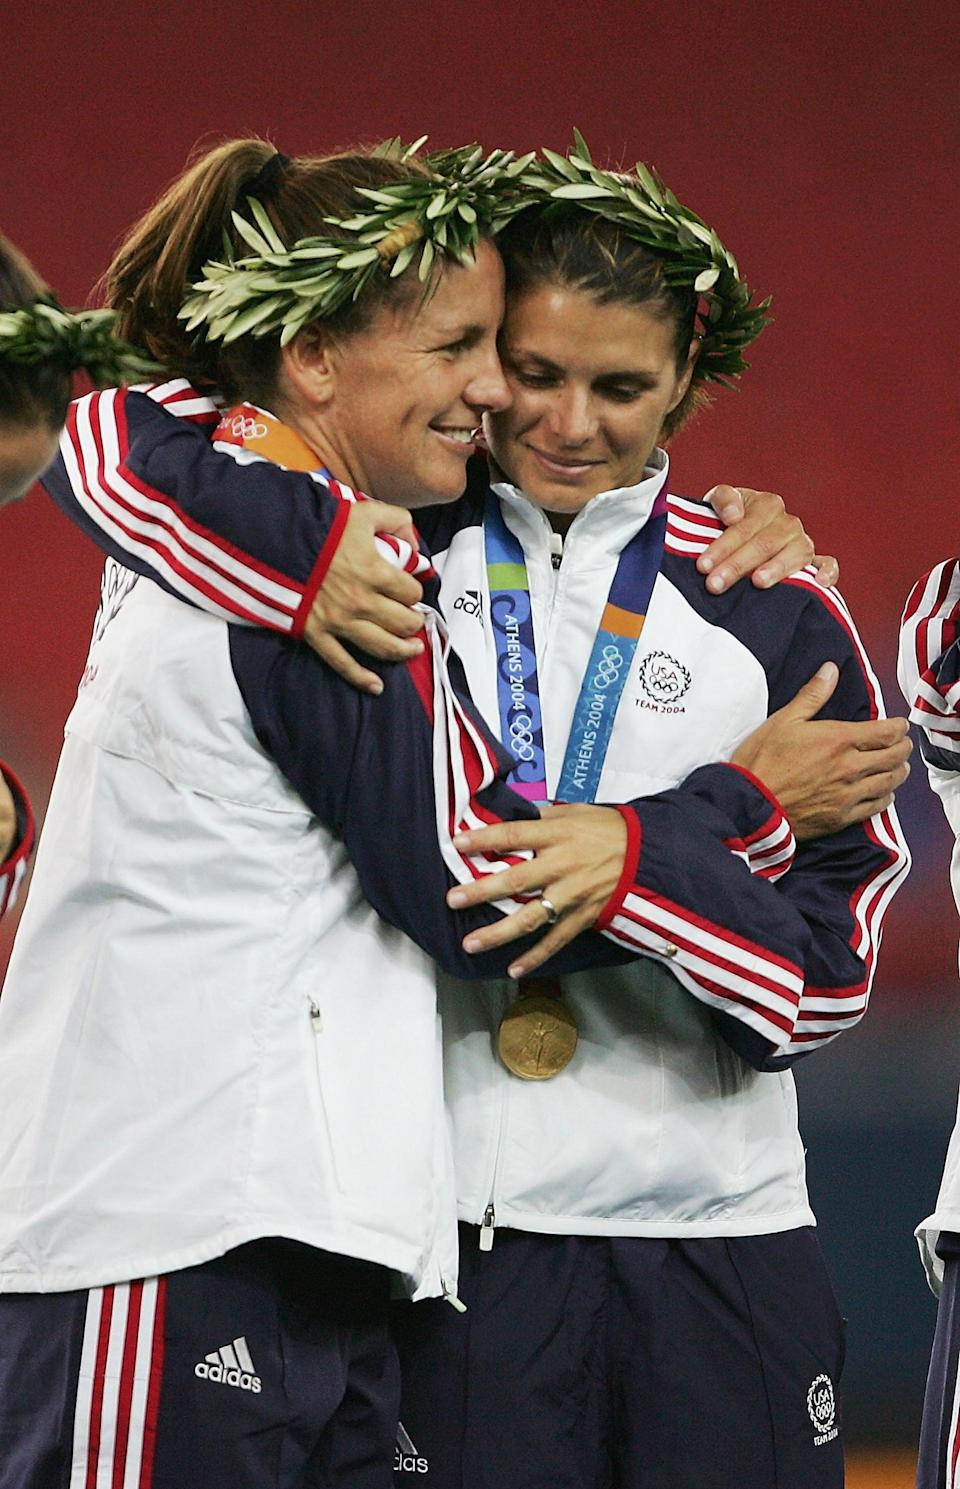 """<p>After years of defining women's soccer in the US, <a href=""""https://www.teamusa.org/News/2015/June/02/Nine-Moments-That-Defined-The-US-Womens-Soccer-Team"""" class=""""link rapid-noclick-resp"""" rel=""""nofollow noopener"""" target=""""_blank"""" data-ylk=""""slk:the &quot;Fab Five&quot; of the epic late-'90s"""">the """"Fab Five"""" of the epic late-'90s</a> announced they were closing out their careers. Mia Hamm, Joy Fawcett, and Julie Foudy announced that their final tournament would be the 2004 Summer Olympics in Athens, and they definitely went out with a bang, <a href=""""https://www.olympic.org/videos/usa-s-olympic-history-in-women-s-football"""" class=""""link rapid-noclick-resp"""" rel=""""nofollow noopener"""" target=""""_blank"""" data-ylk=""""slk:finishing with yet another gold medal"""">finishing with yet another gold medal</a>. </p> <p>The final match against Brazil served as a bridge between the old and new generations in Team USA's soccer history. As the legends of years past ended their careers, the game-winning goal was scored by a young new player named <a href=""""https://www.fifa.com/womensworldcup/news/abby-wambach-usa"""" class=""""link rapid-noclick-resp"""" rel=""""nofollow noopener"""" target=""""_blank"""" data-ylk=""""slk:Abby Wambach"""">Abby Wambach</a>, who would go on to lead the next generation of American soccer stars. </p>"""